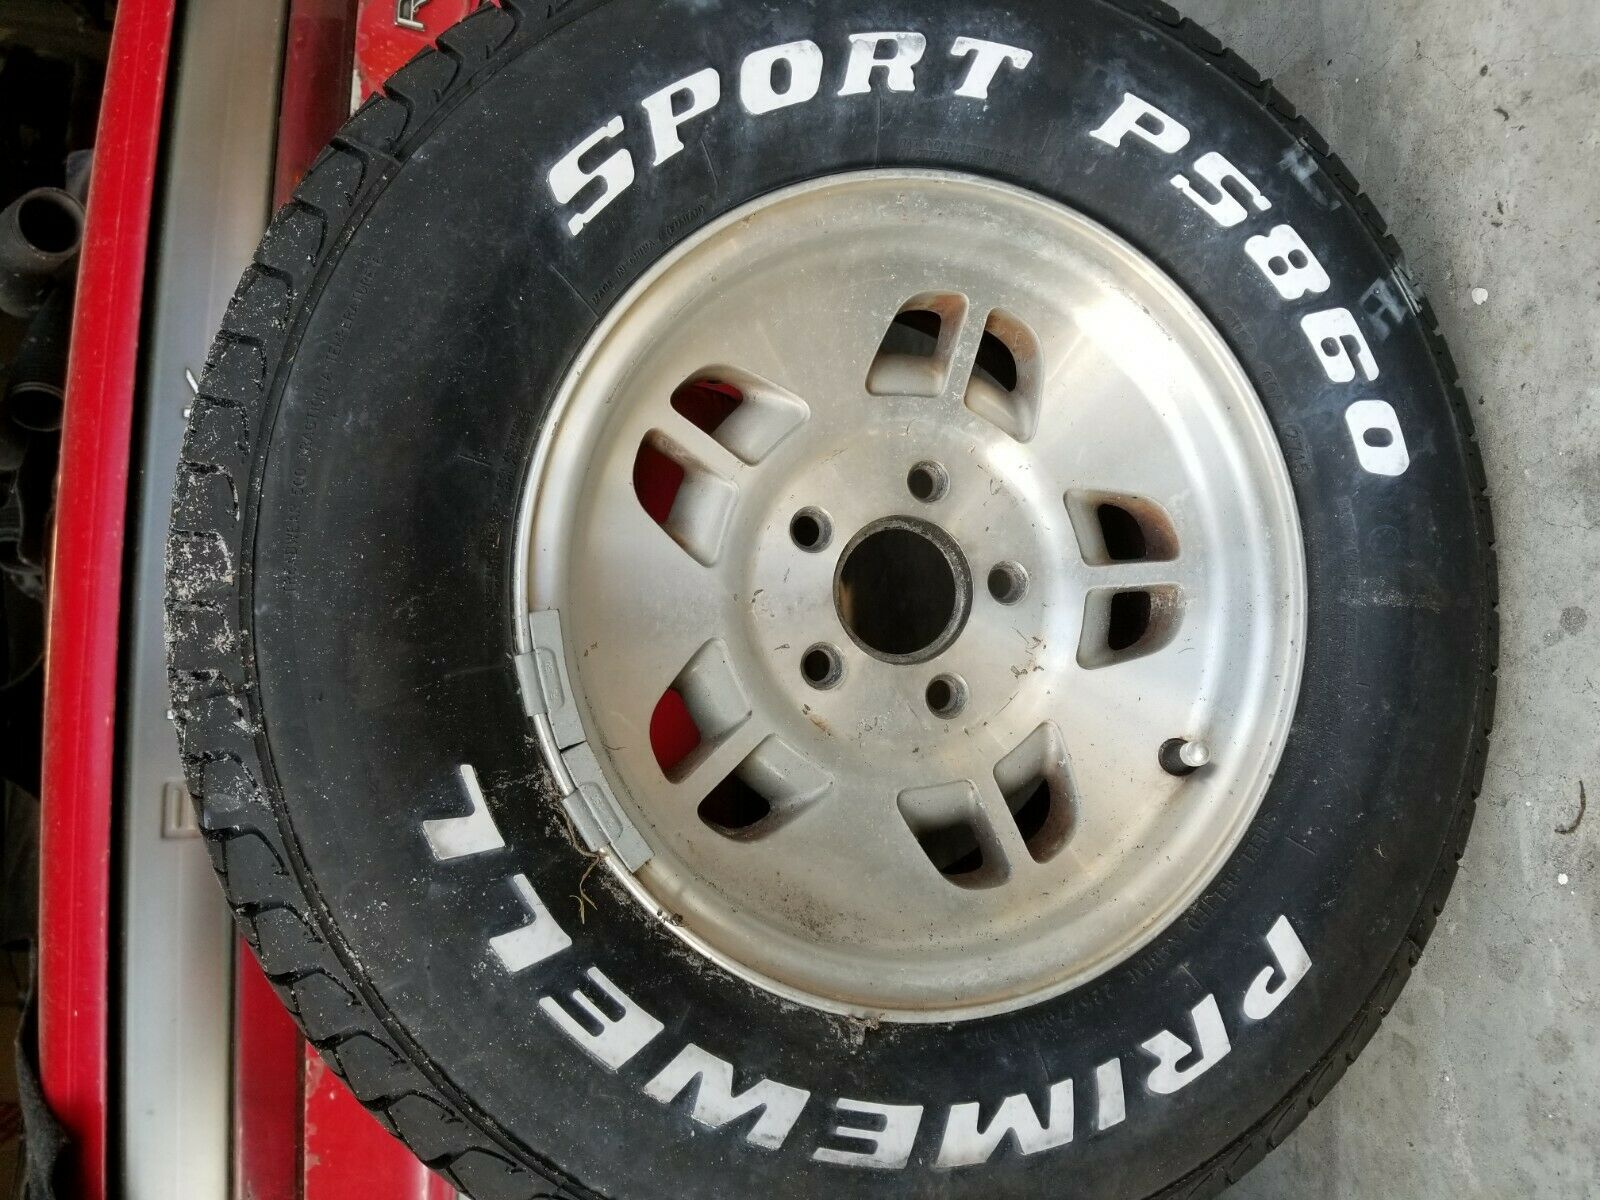 3 Ford Ranger rims with low mileage tires 1 steel wheel with low mileage tire